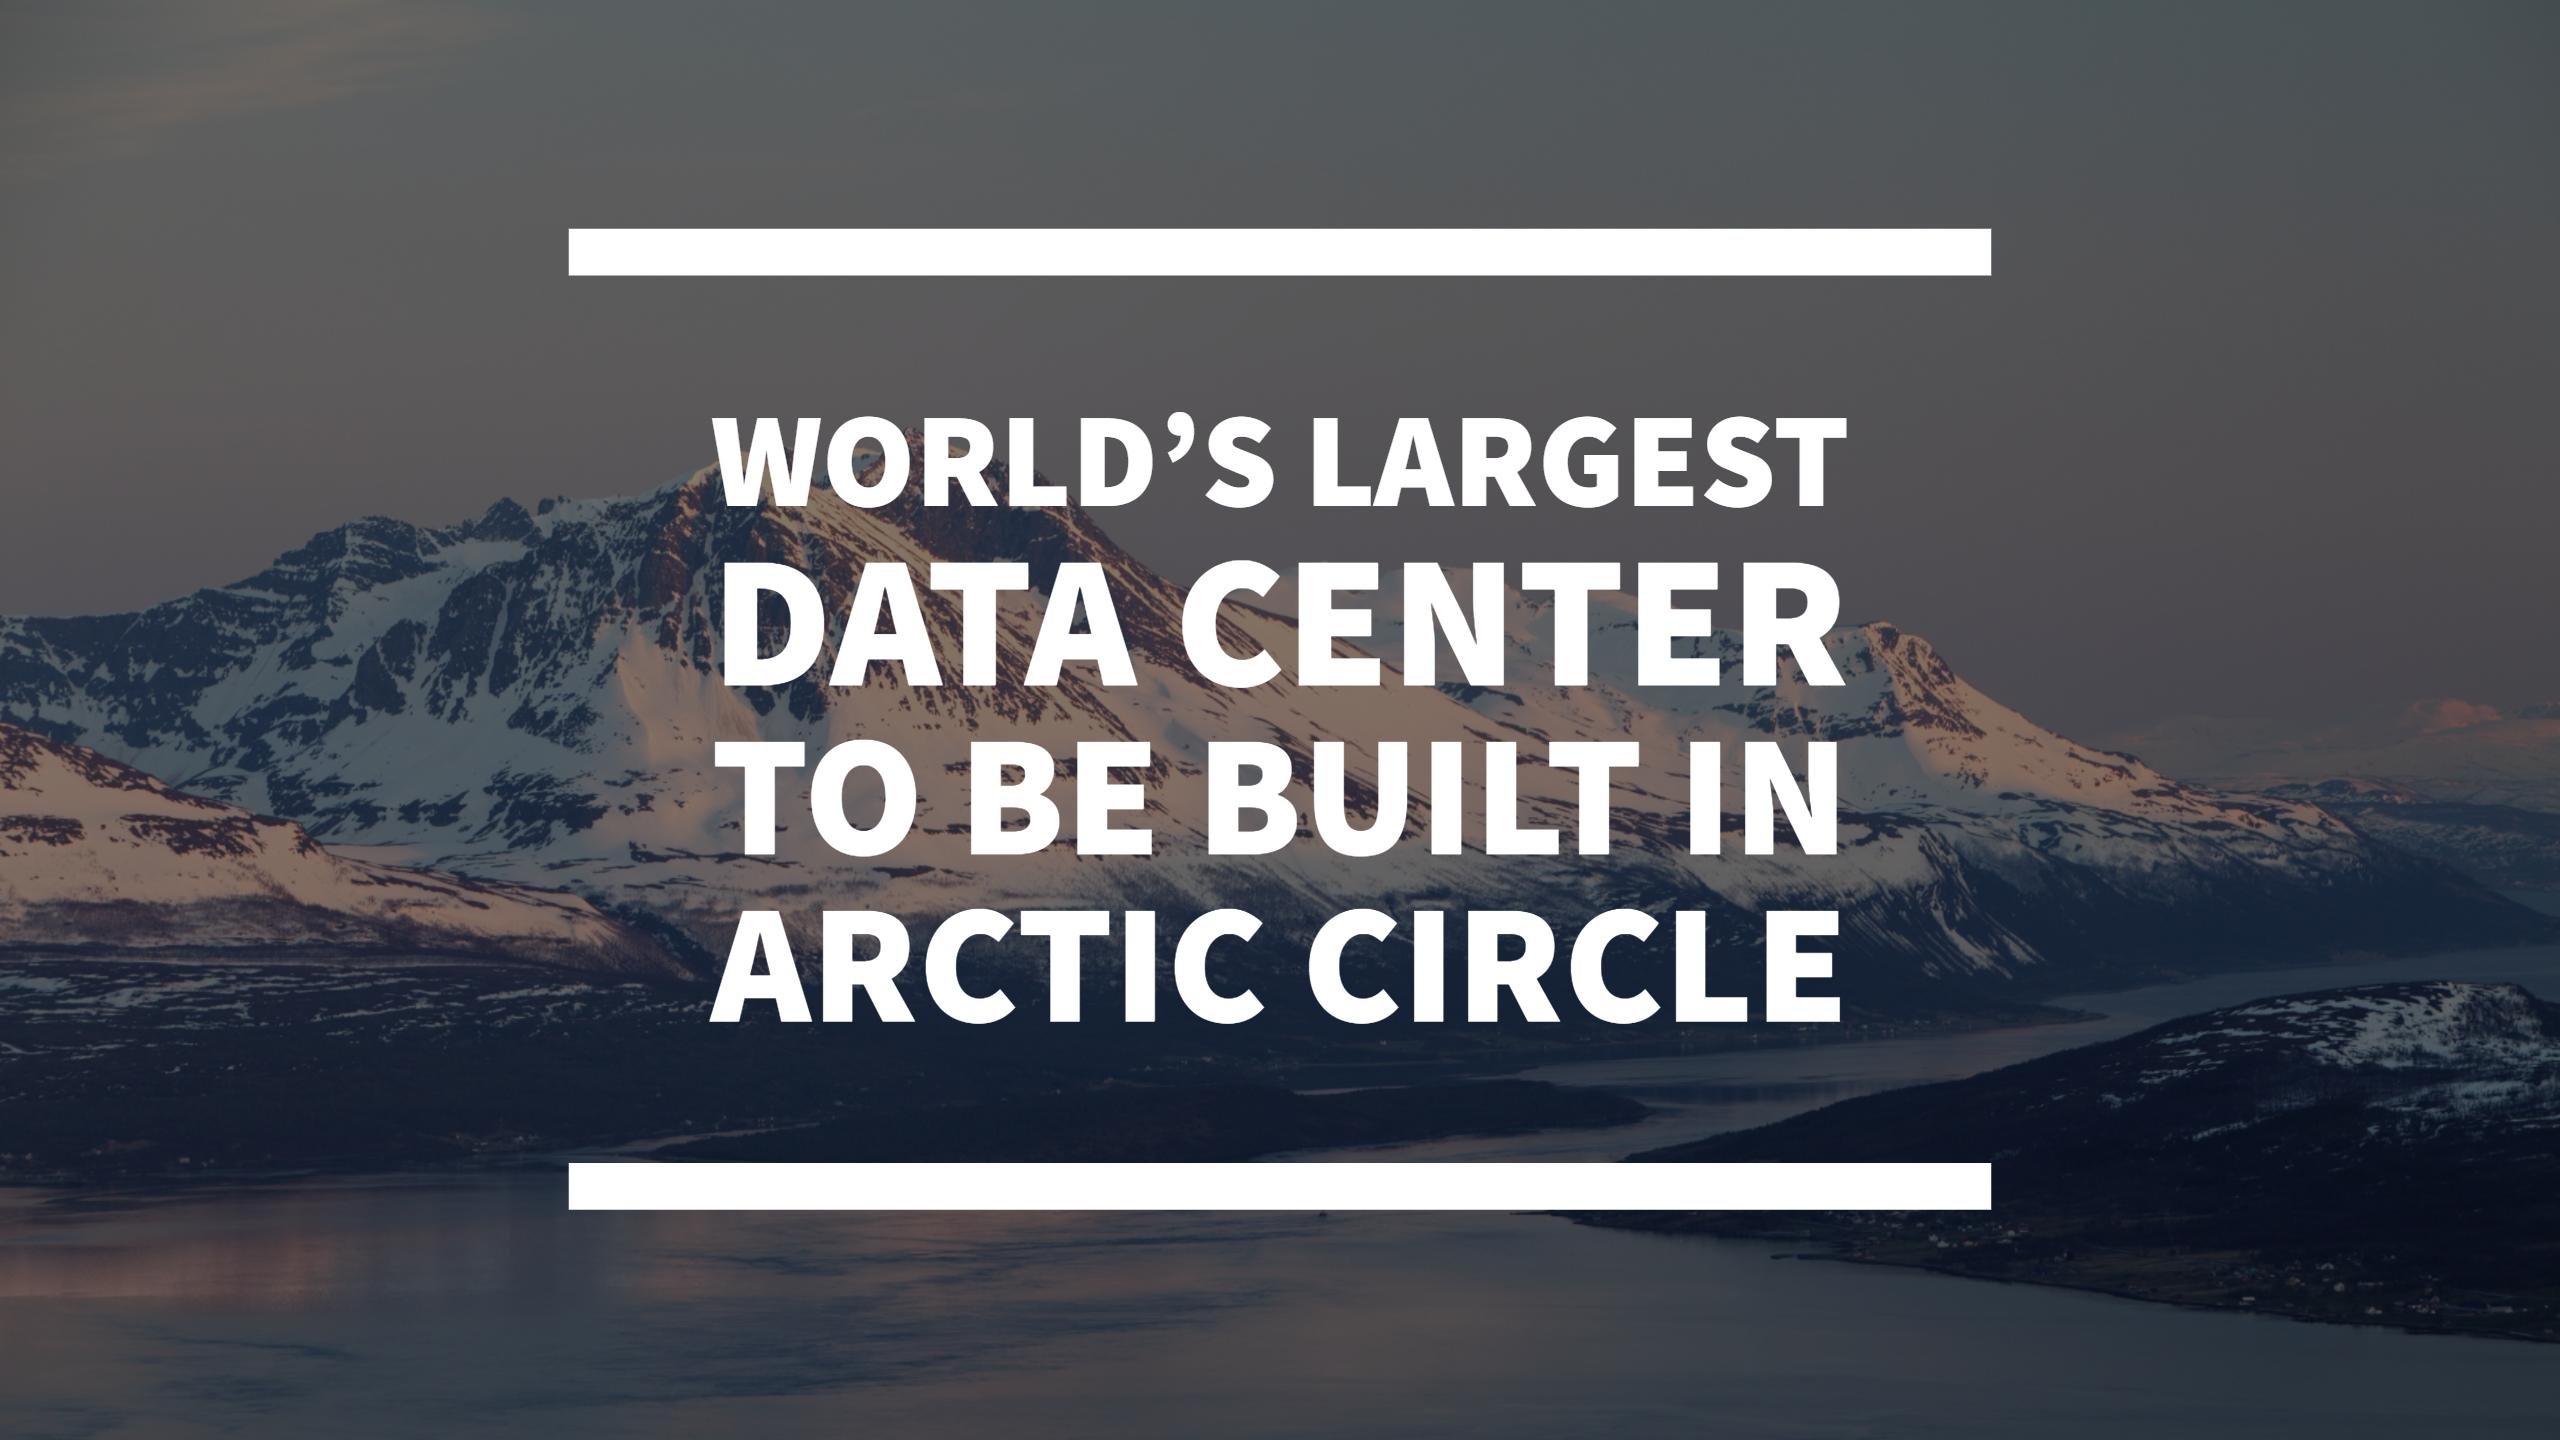 Largest Data Center to be Built in Arctic Circle